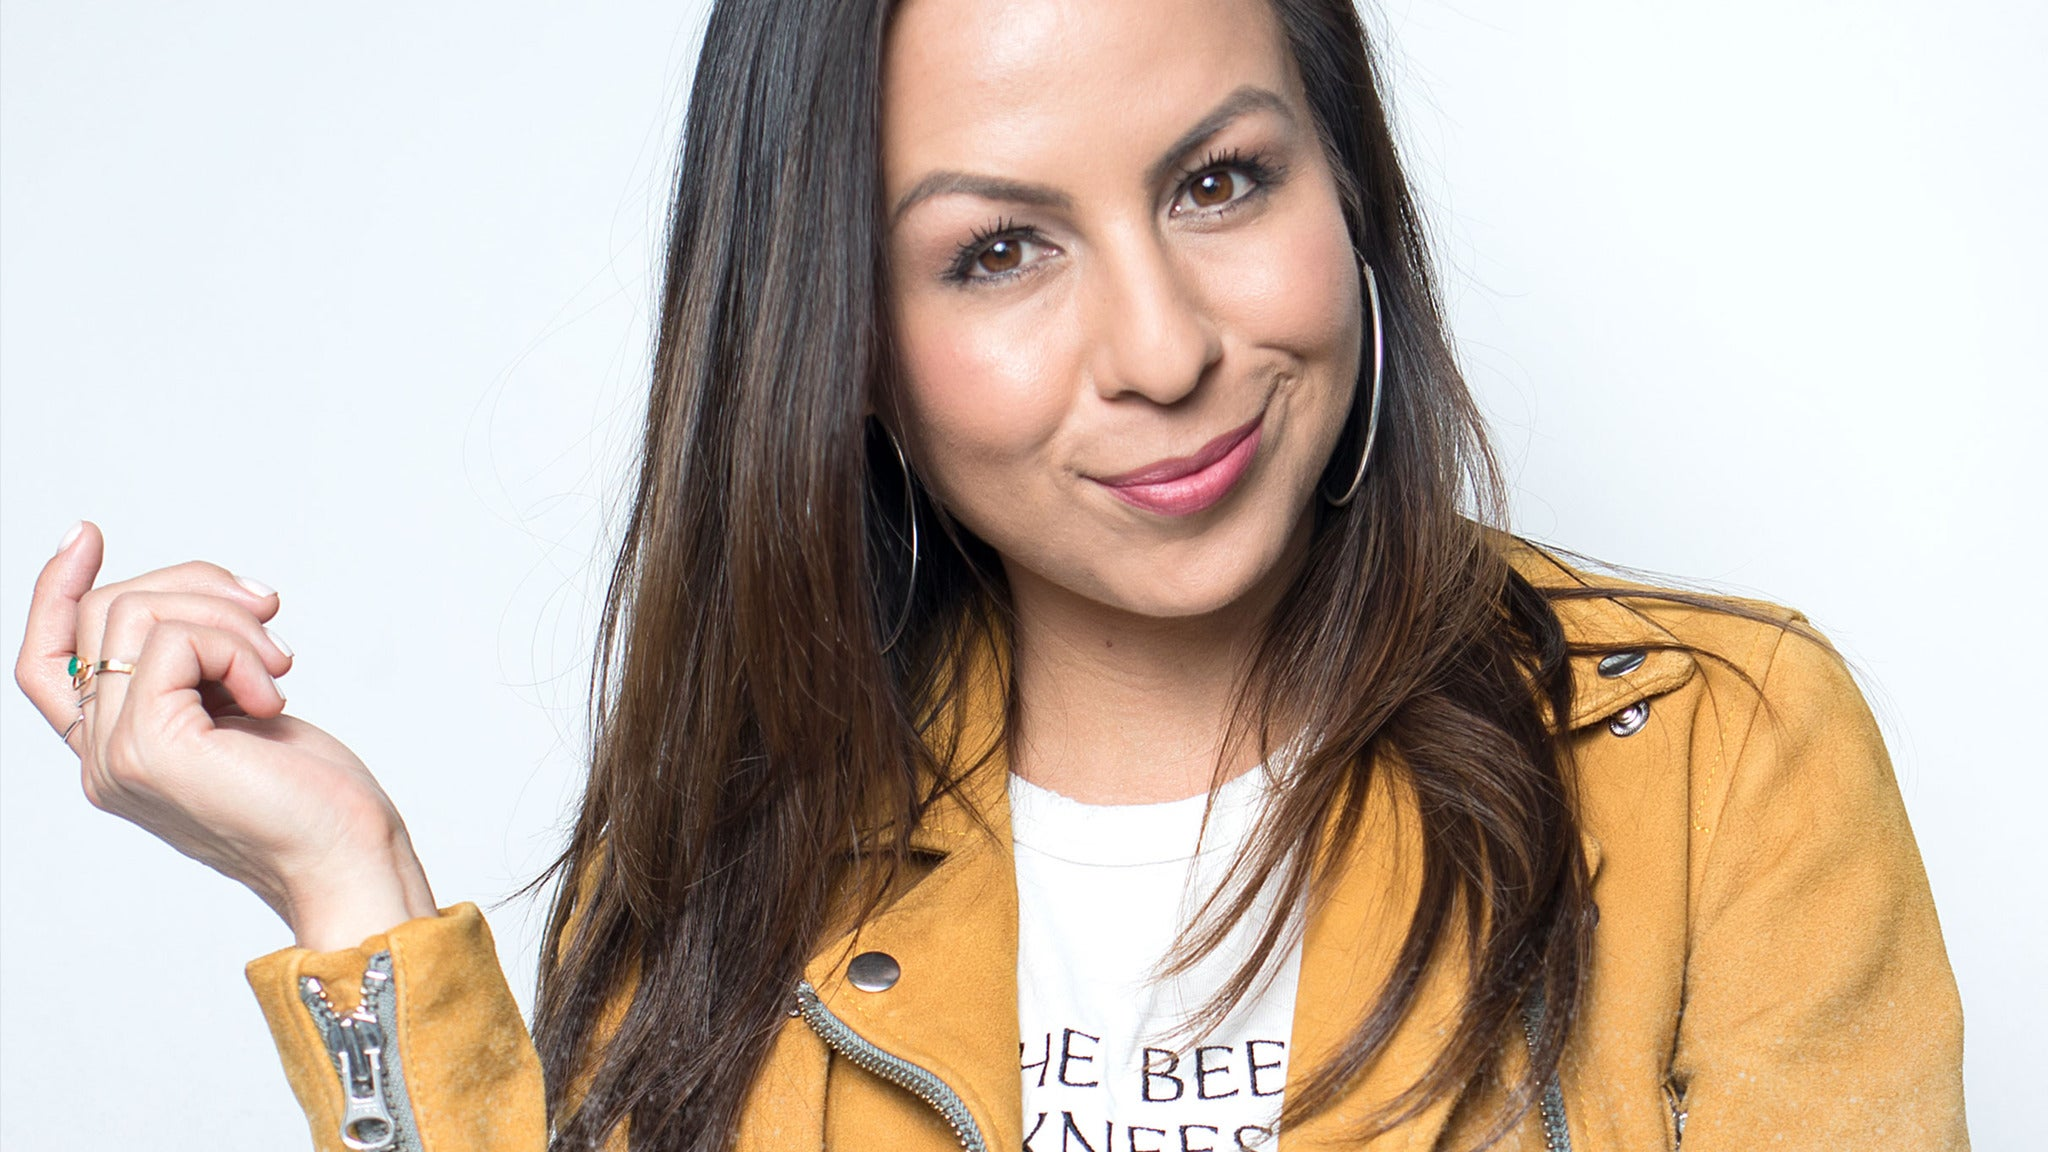 Anjelah Johnson at Orpheum Theatre - Wichita KS